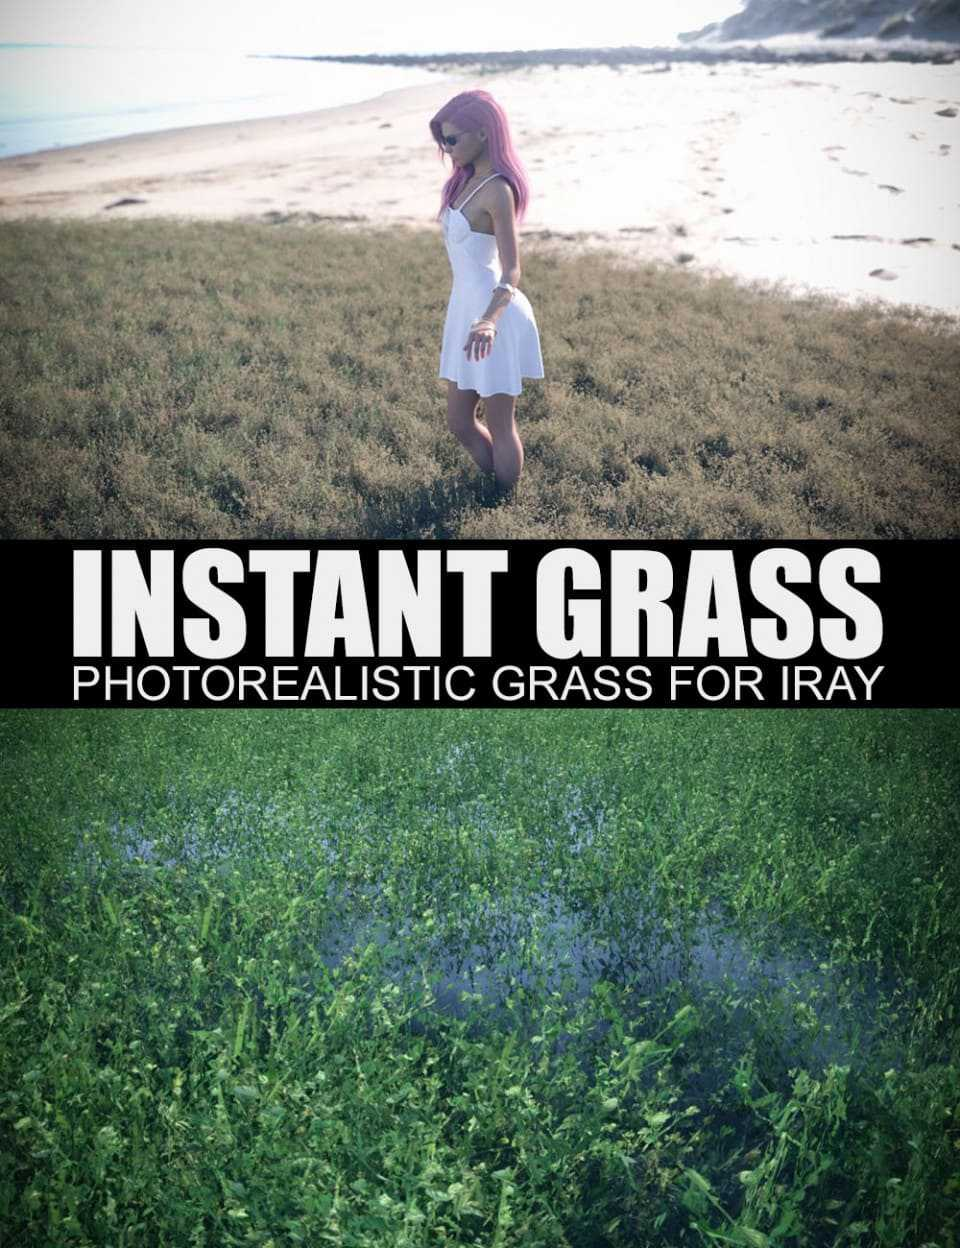 Instant Grass - Photorealistic Grass For Iray